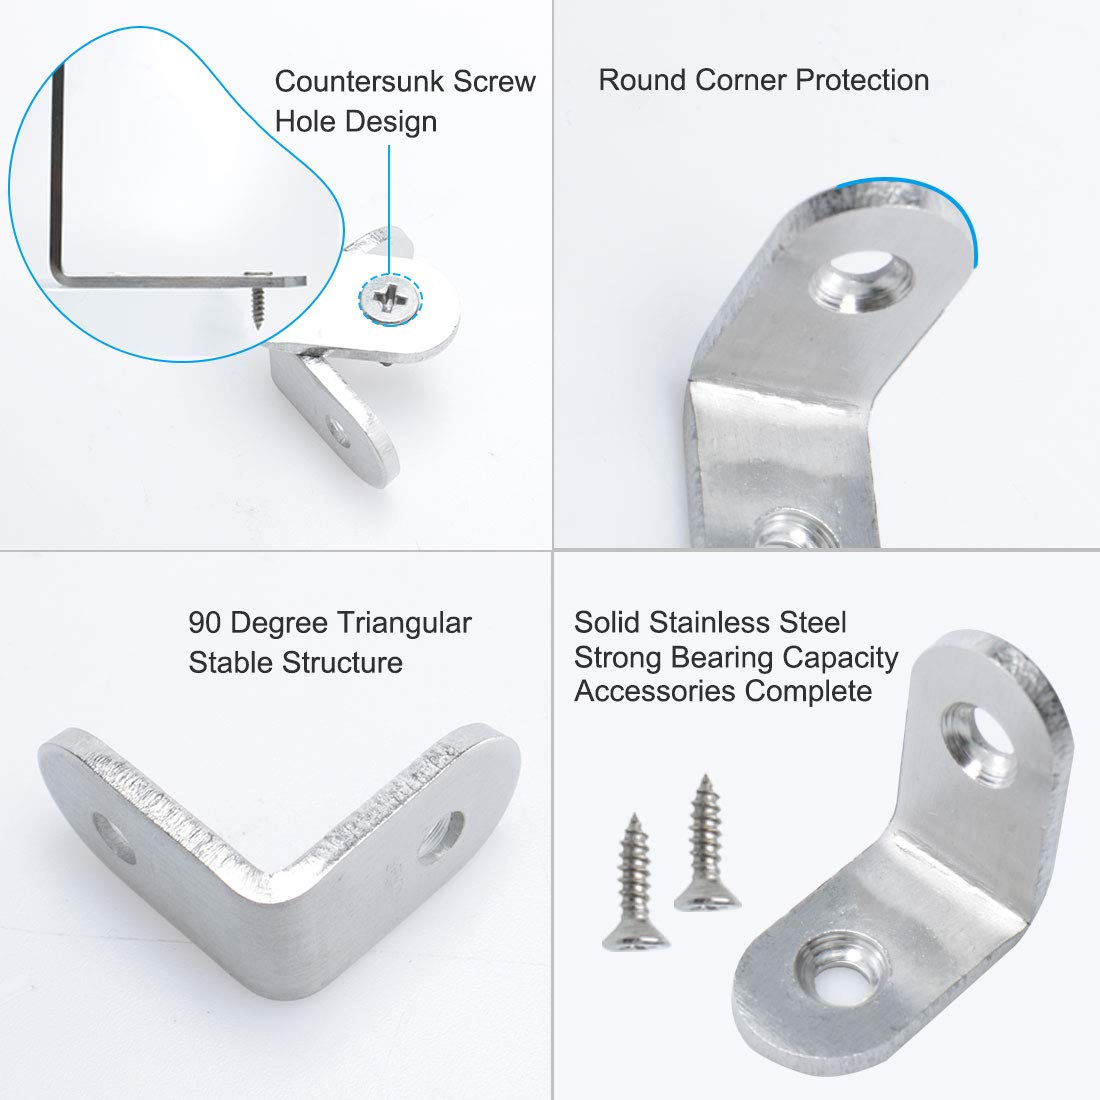 uxcell 4pcs Angle Bracket Stainless Steel 25x25mm Corner Brace Fastener L Shaped Right Angle Brackets Corner Protector Shelf Support with Screws for Furniture